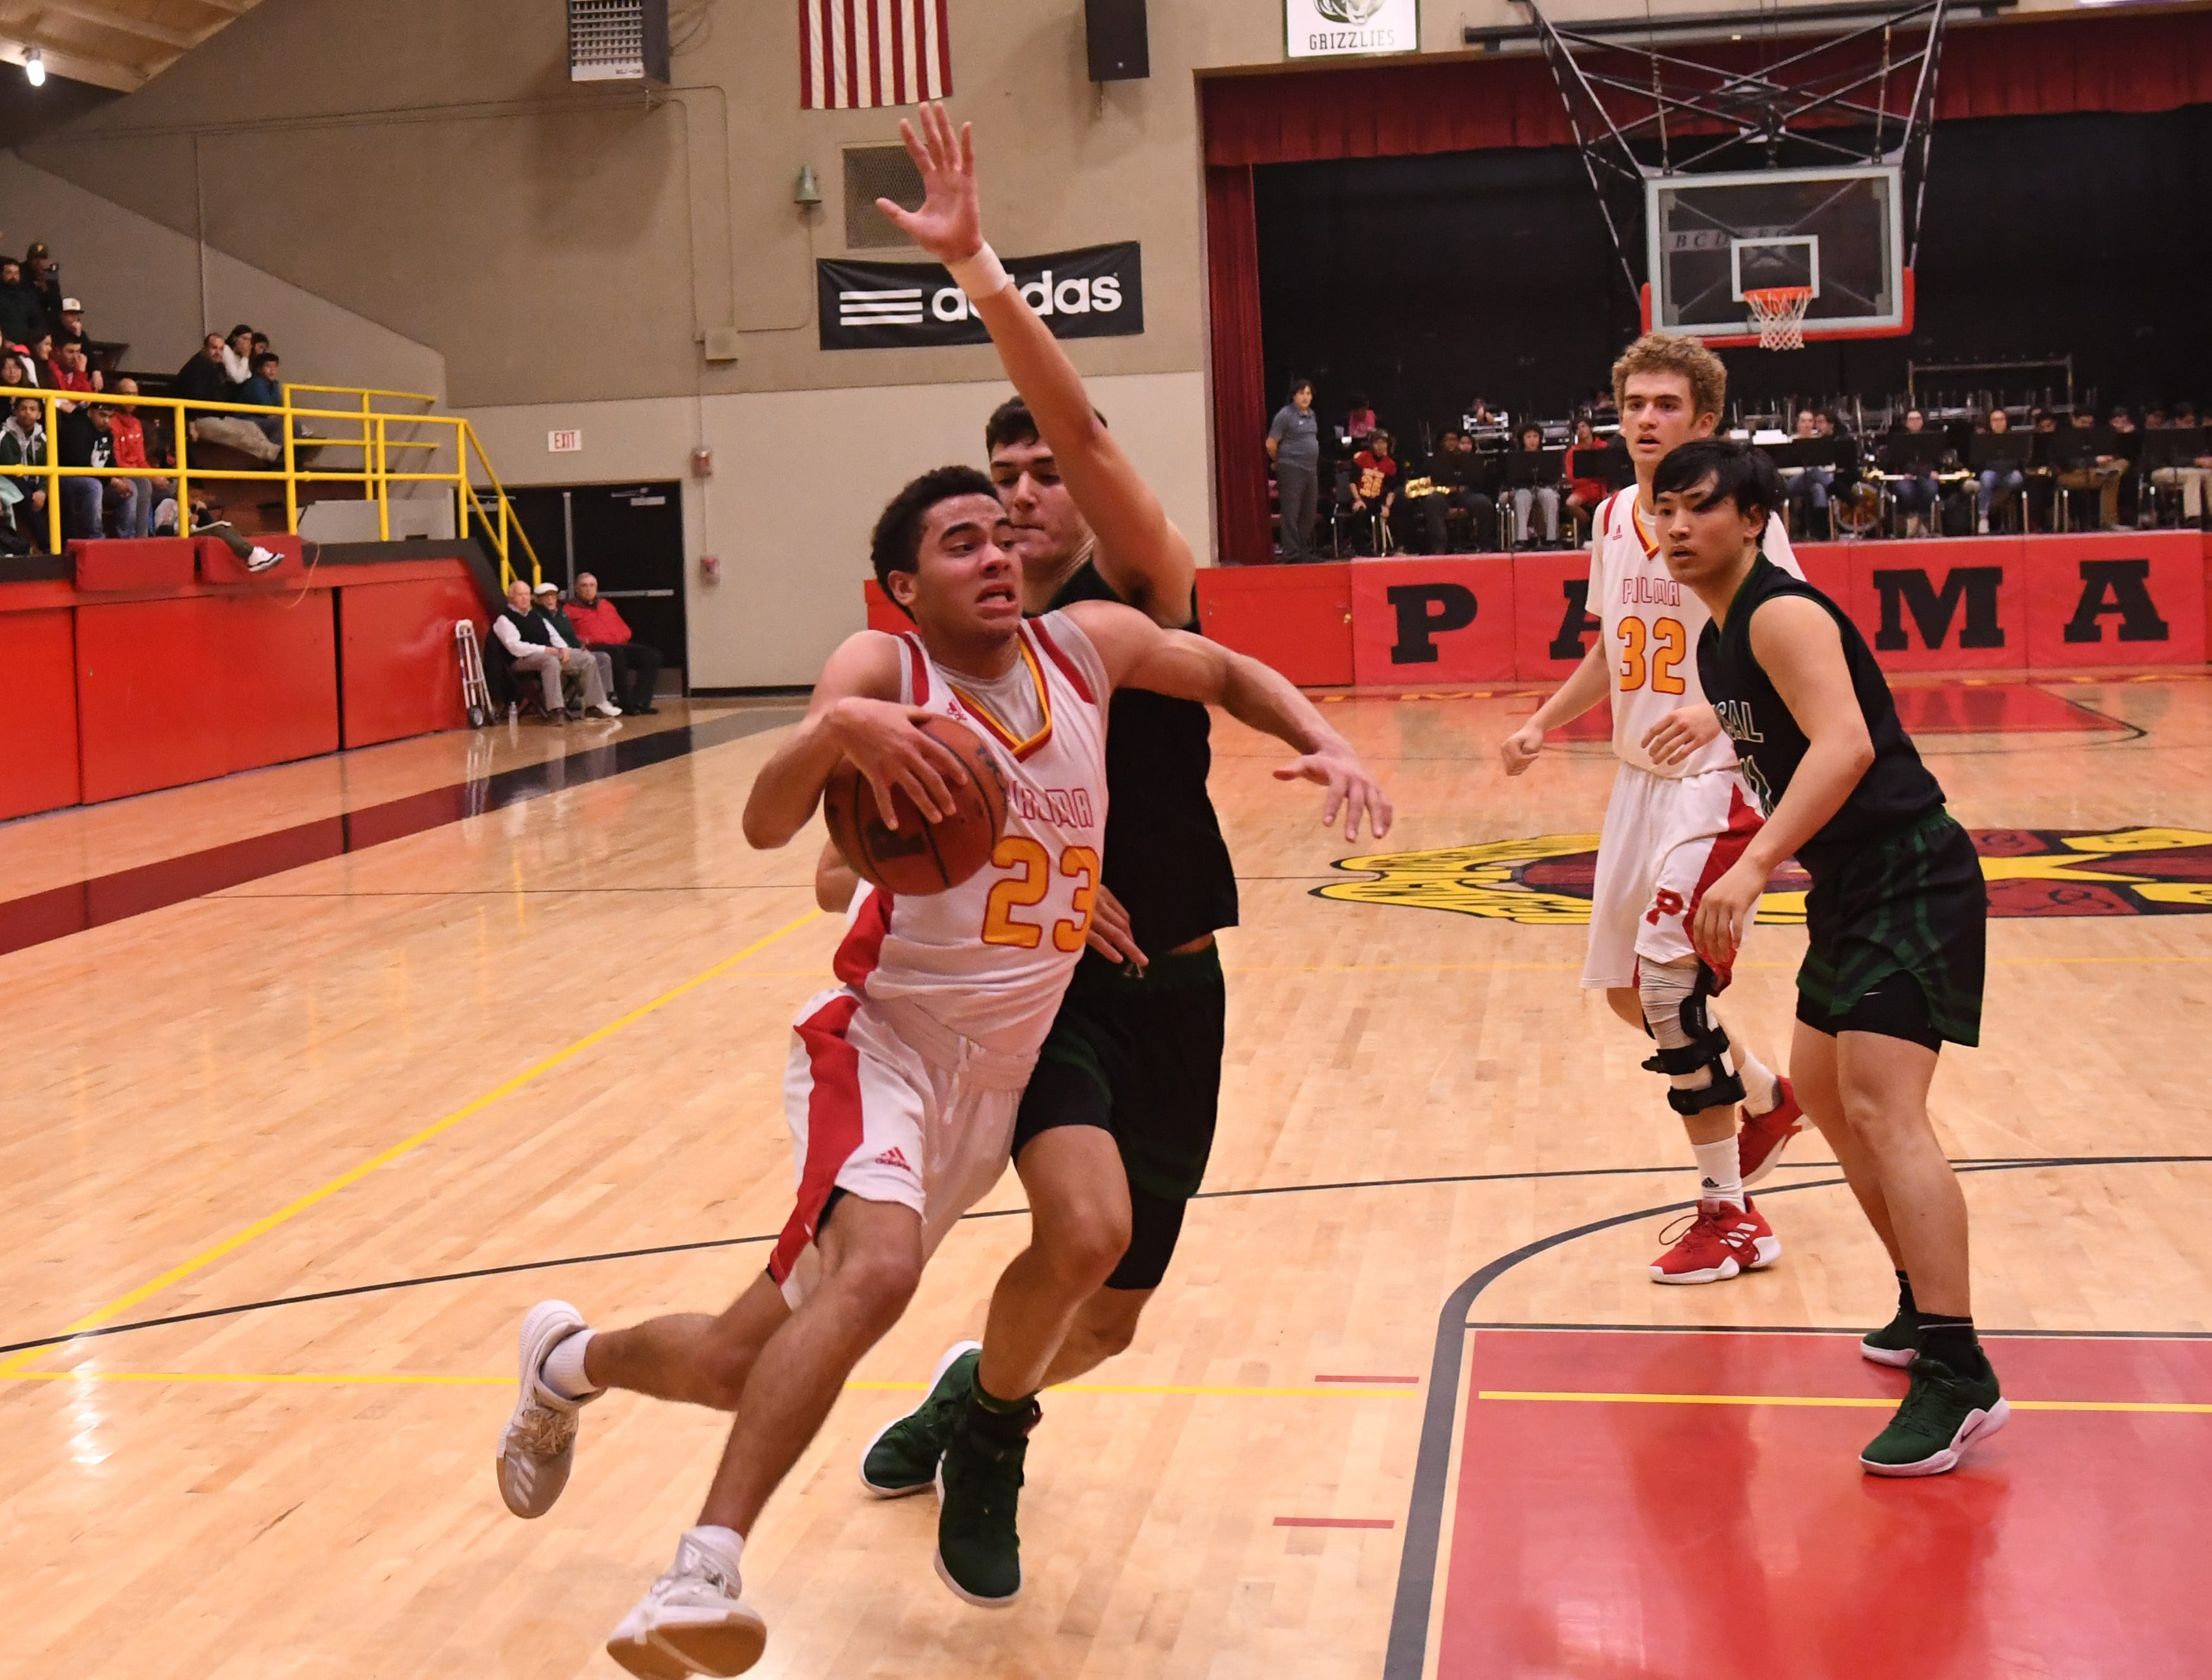 Palma forward Brenden Cannon (23) drives to the paint.